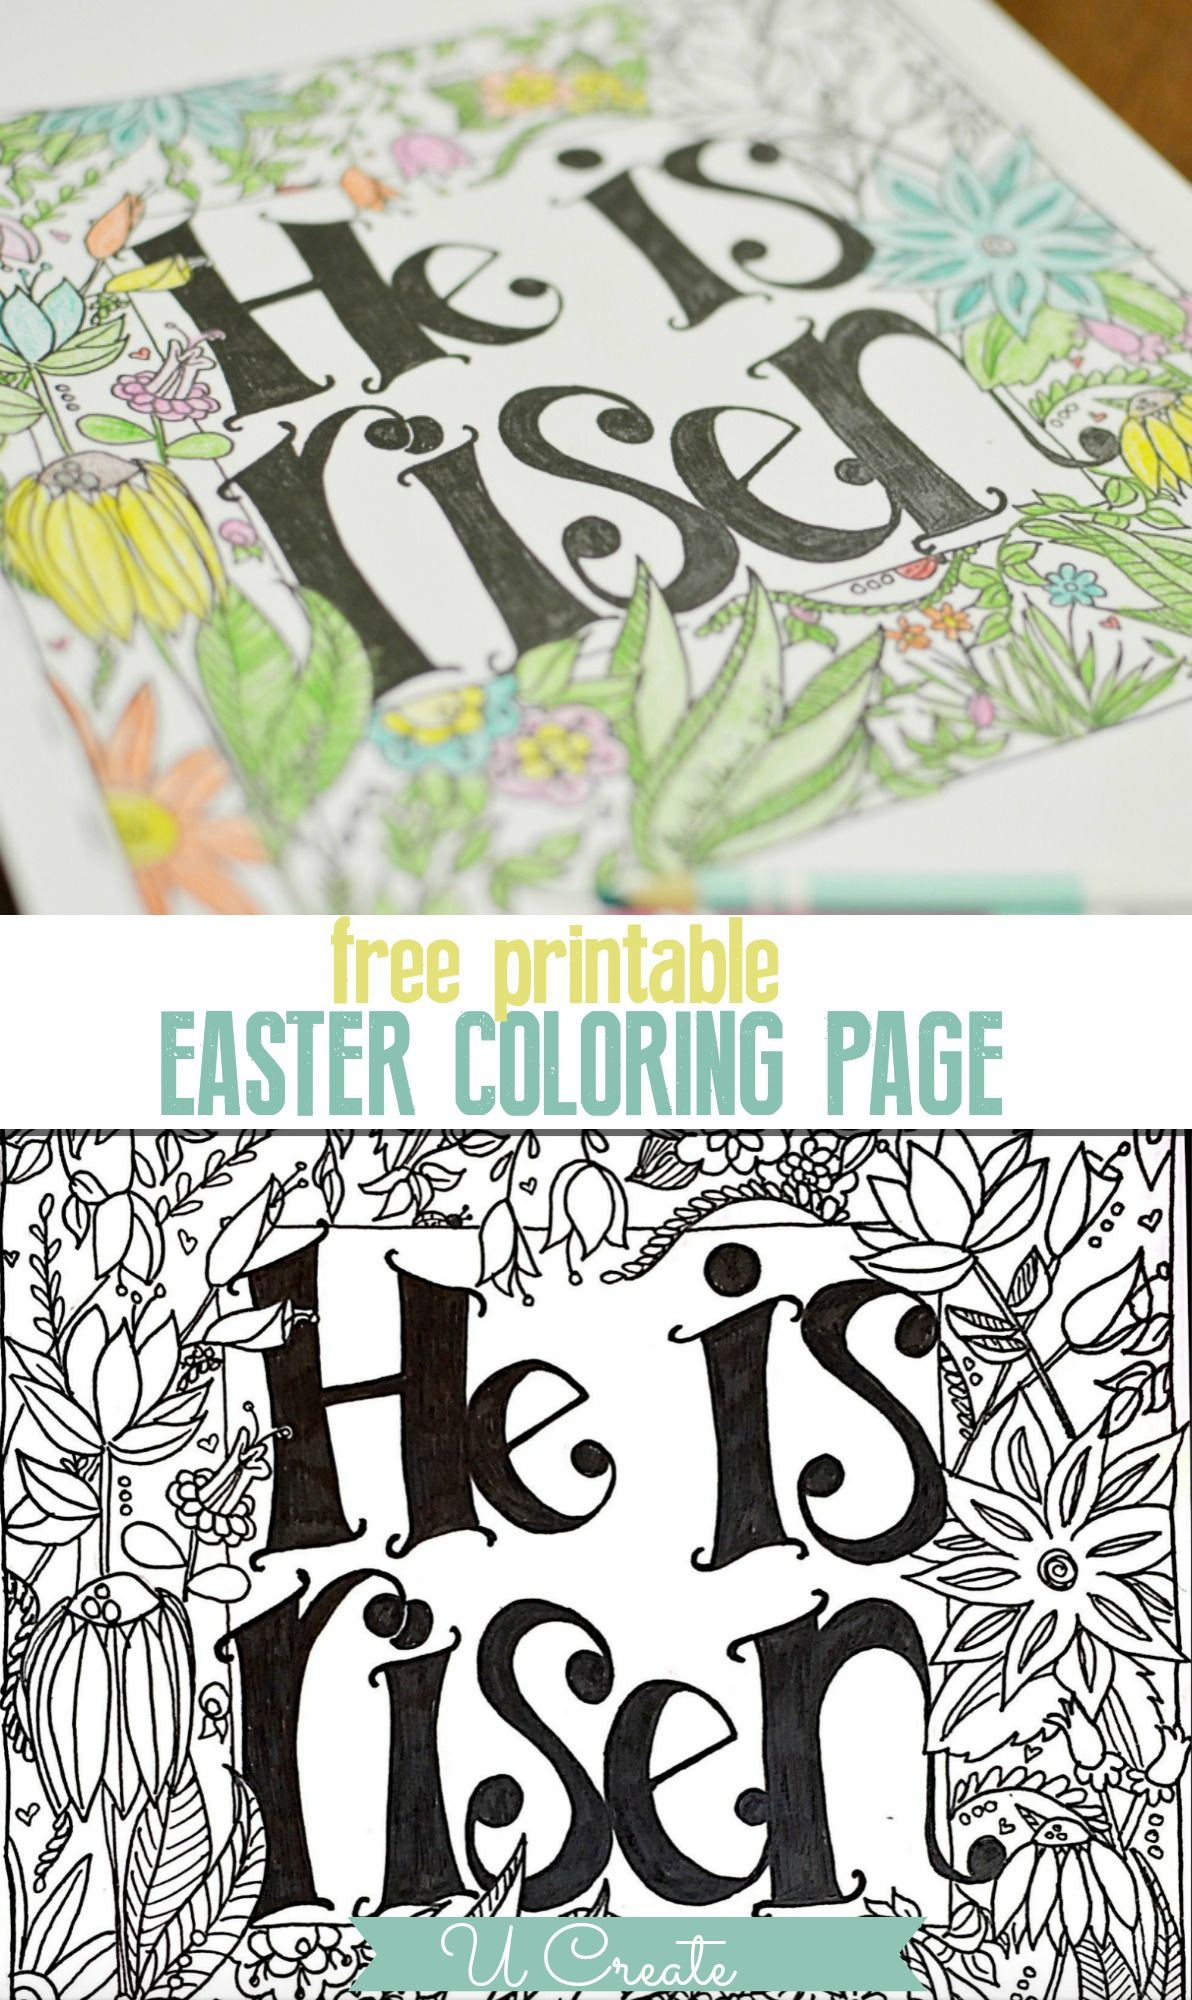 He Is Risen Coloring Page U Create Easter Coloring Pages Easter Coloring Pages Printable Easter Printables Free